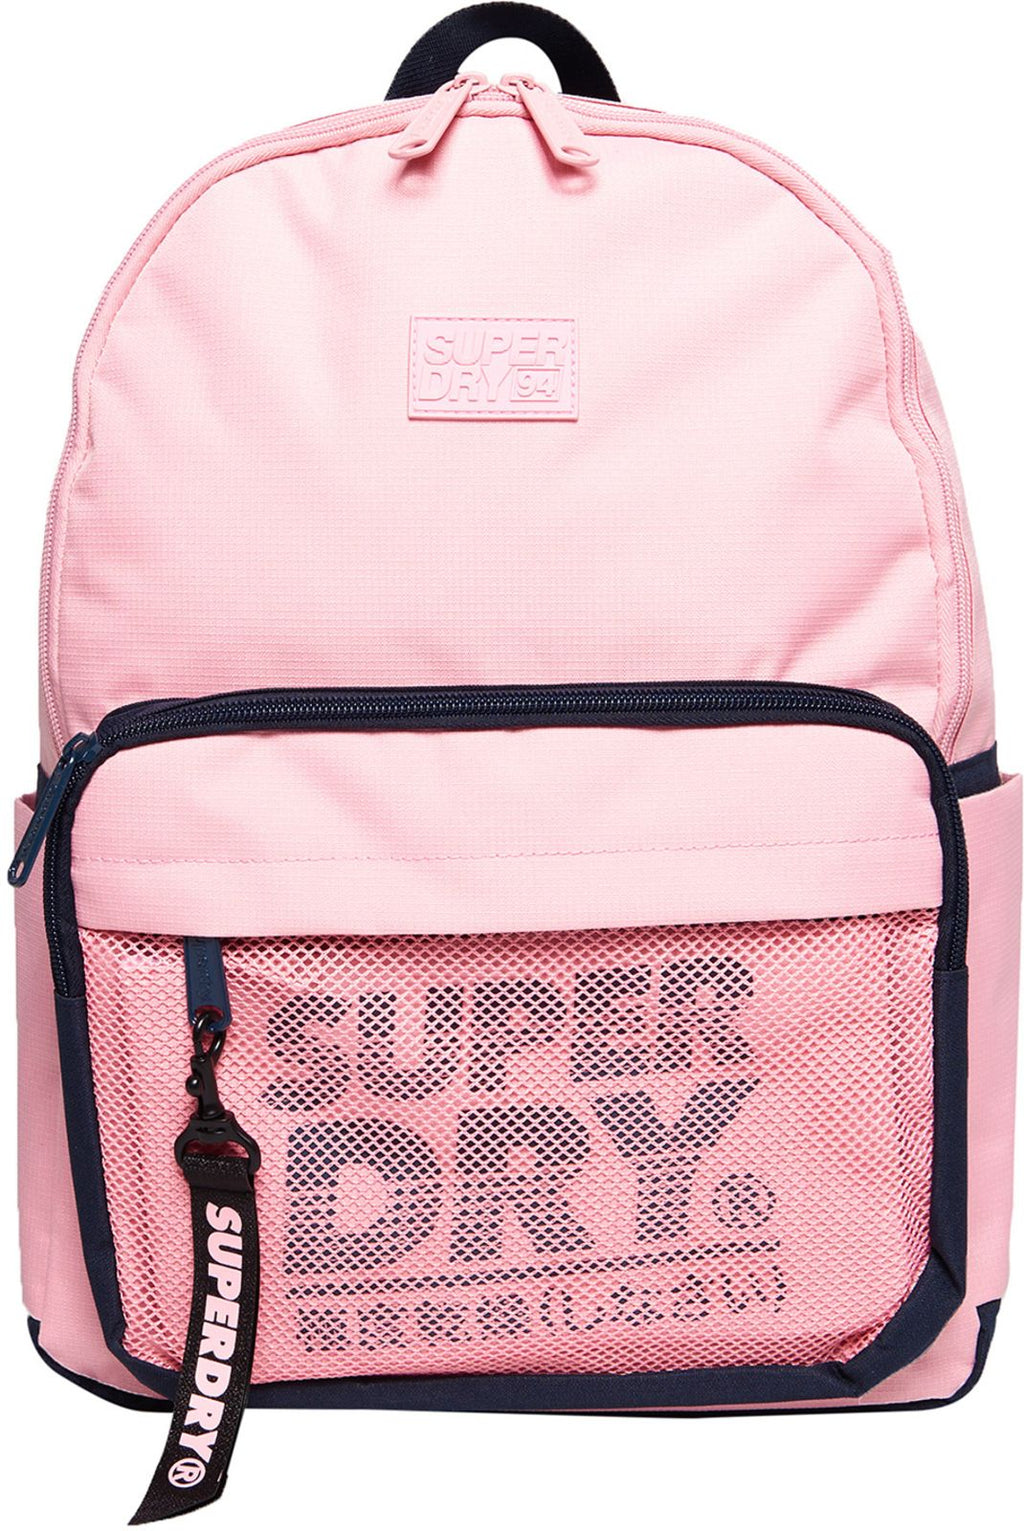 Superdry Mesh Pocket Backpack Bag Pink Nectar